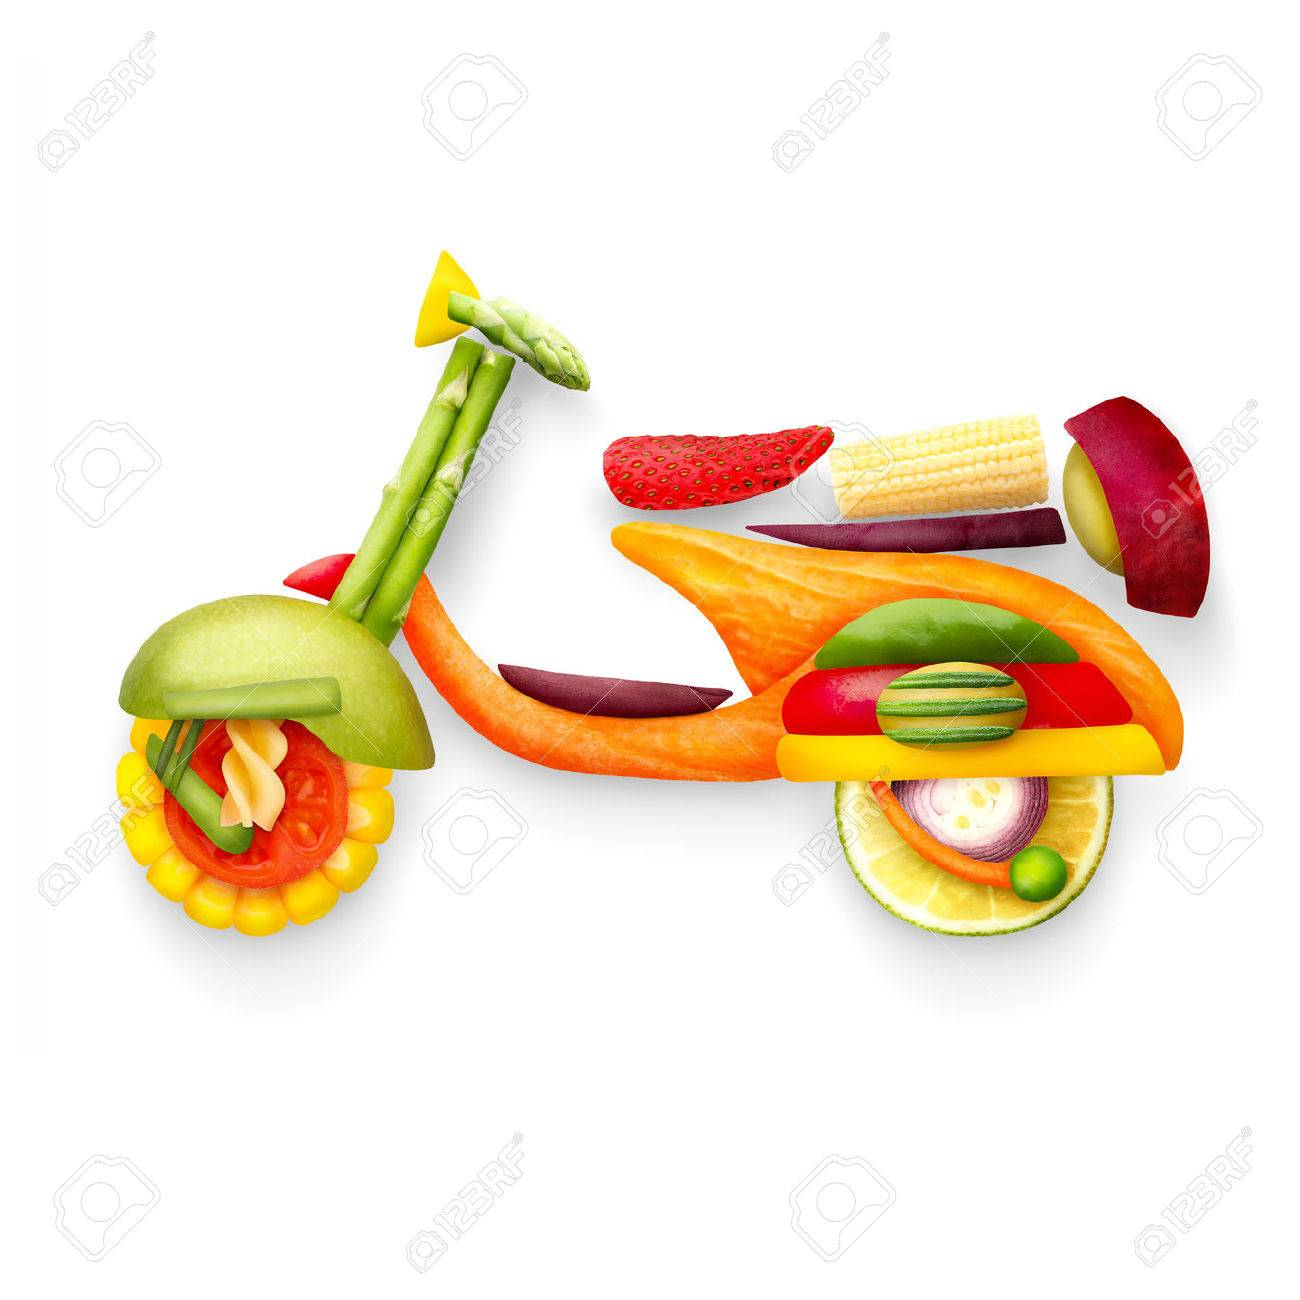 A food concept of a classic retro scooter Vespa for summer travelling made of fruits and vegs isolated on white. Stock Photo - 40402660